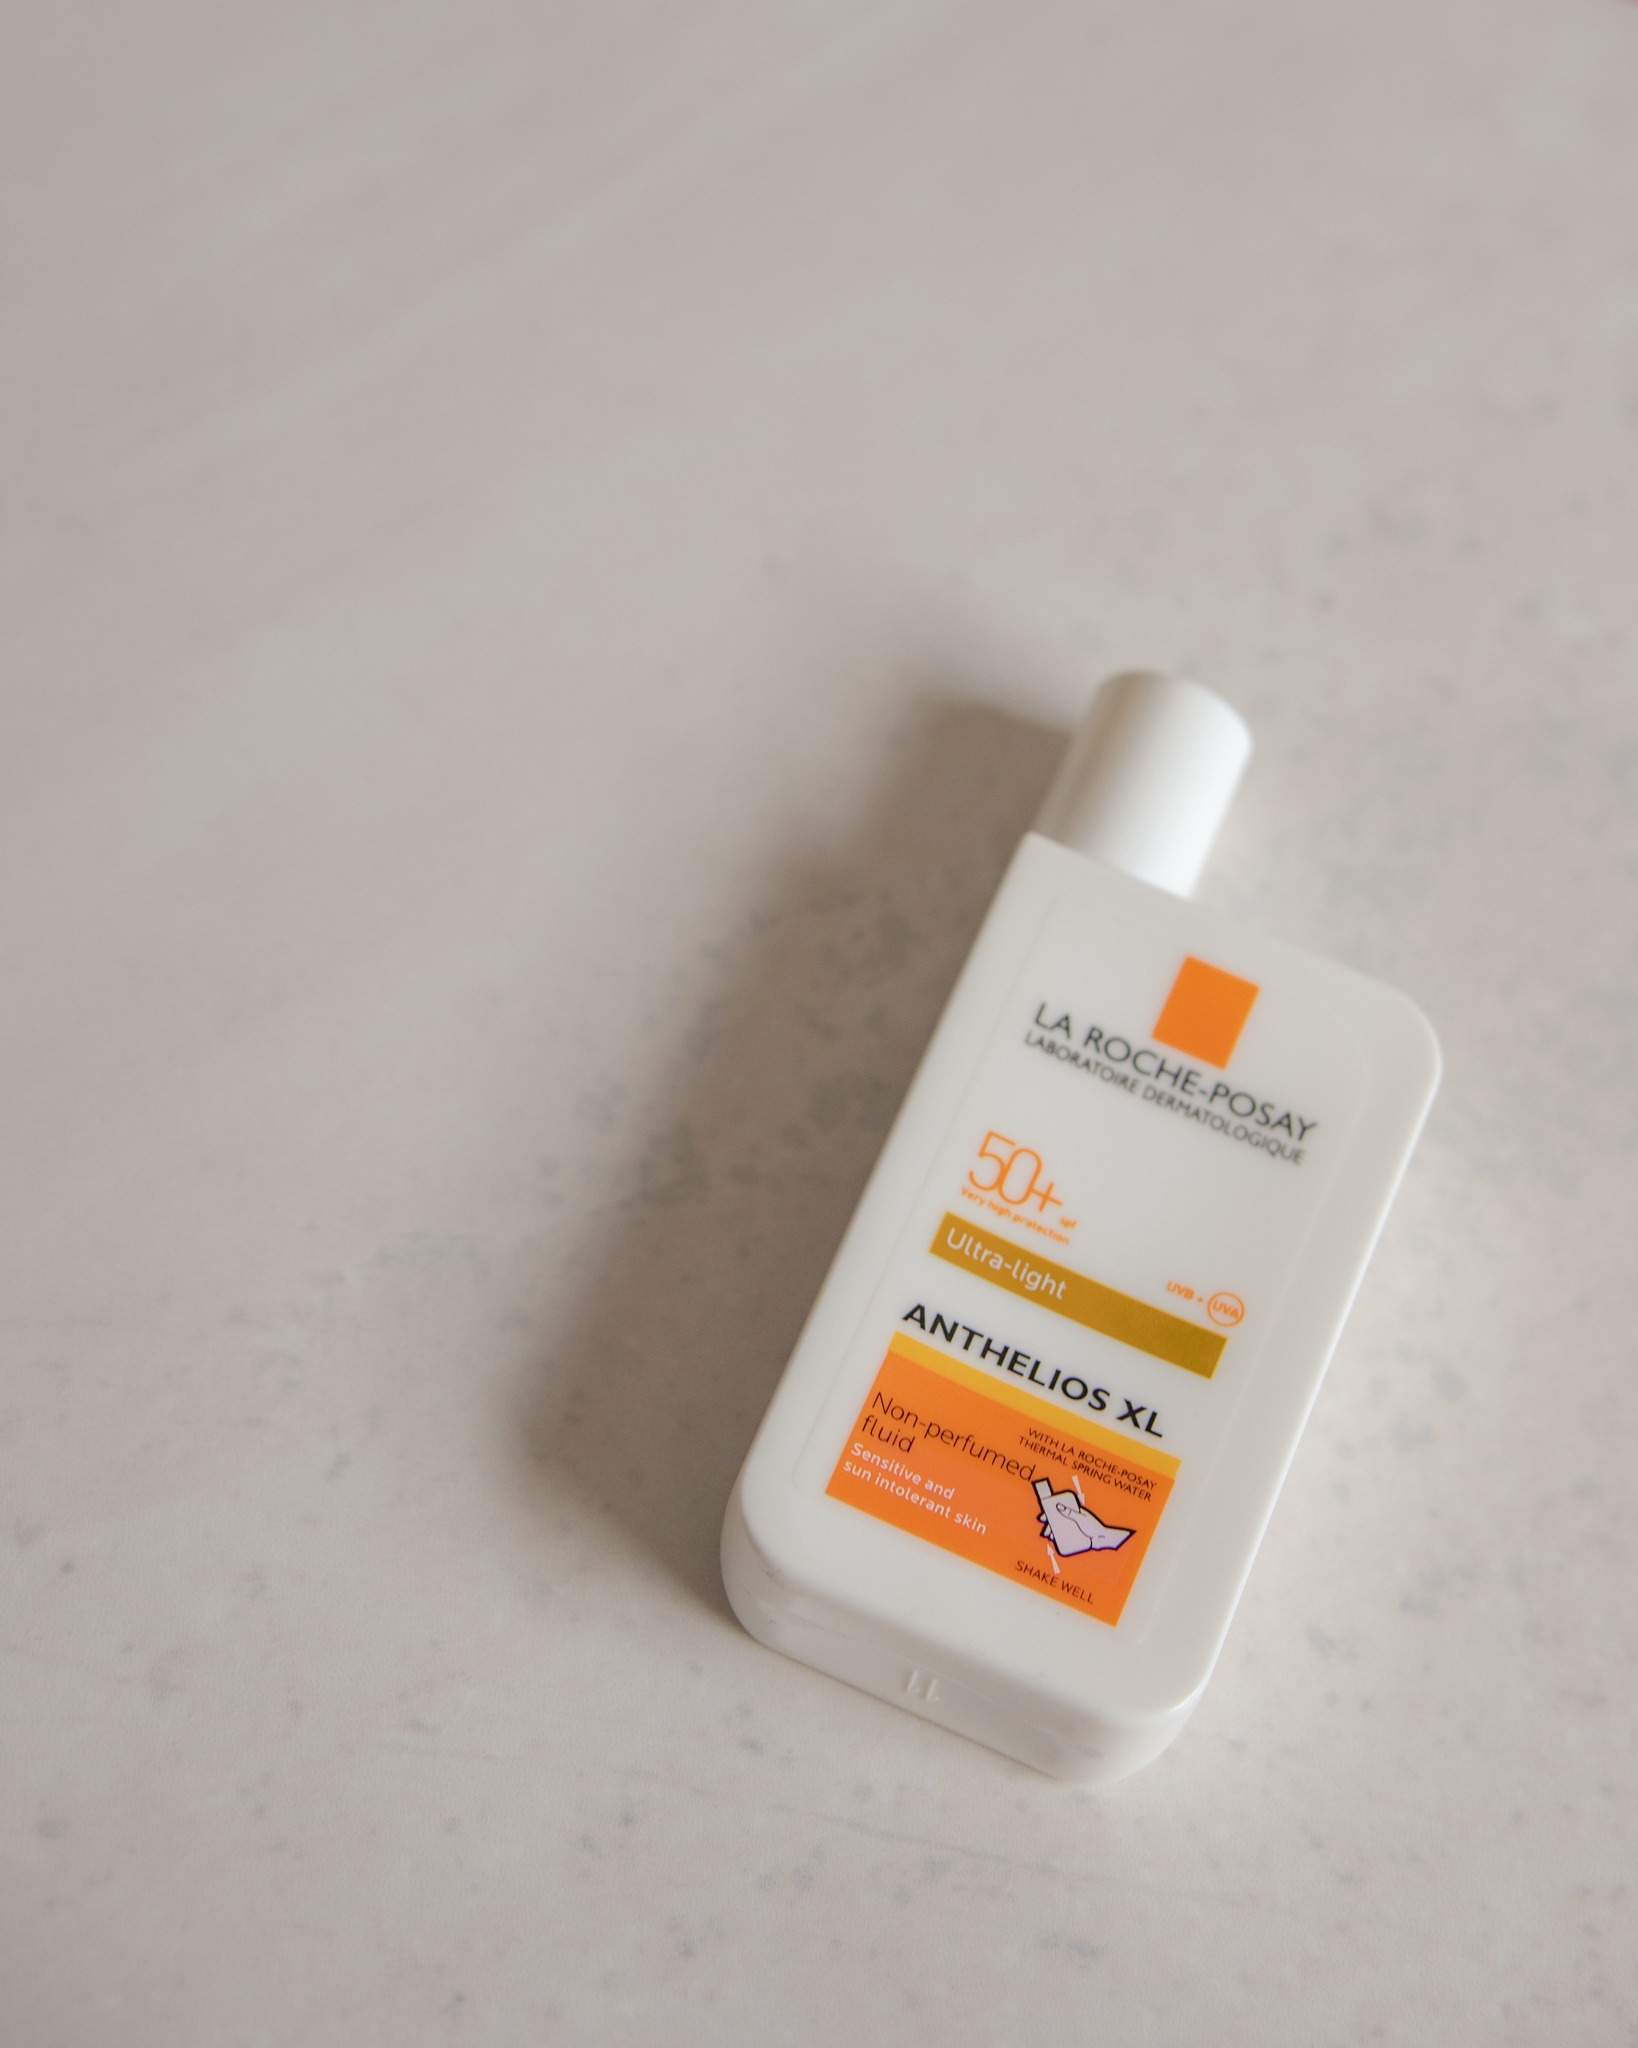 la roche posay ultra light spf50